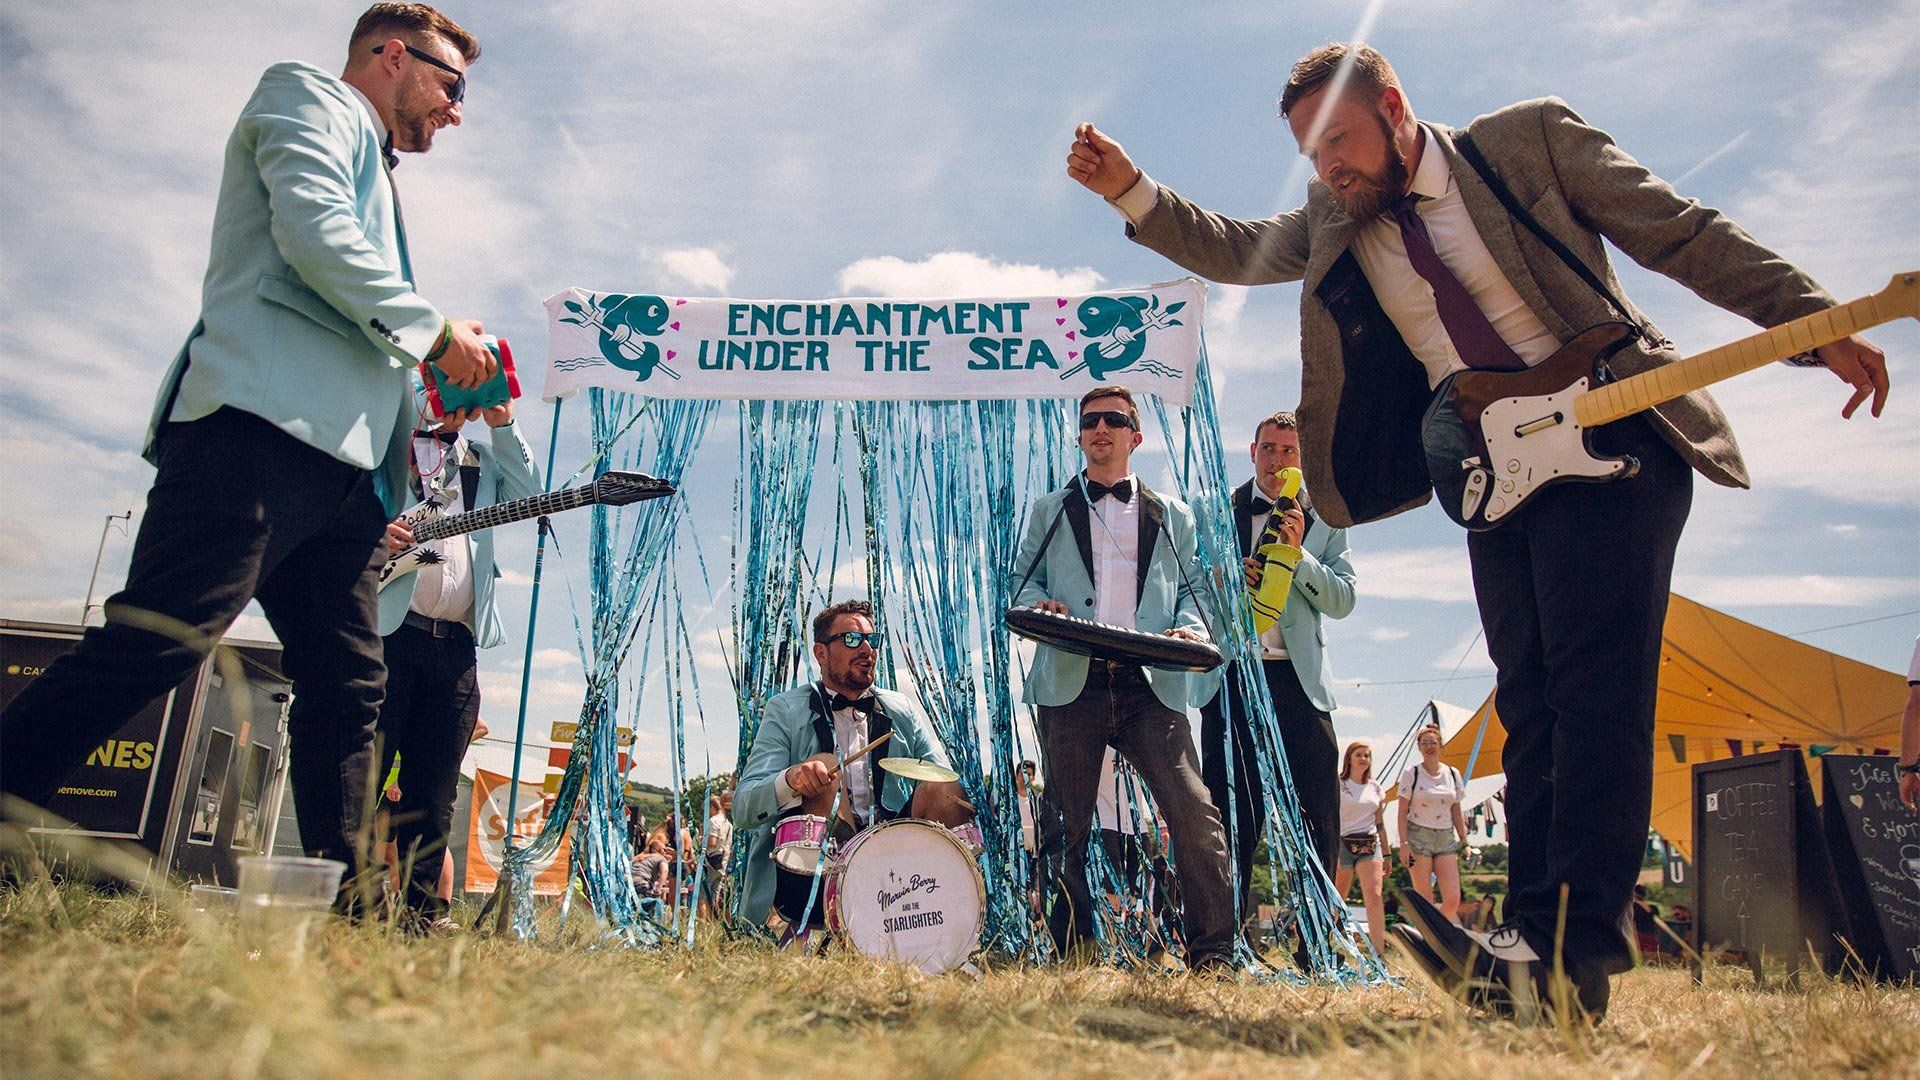 Men in blue jackets and bow ties pretend to play inflatable instruments in a field. Photo by Ben Morse.